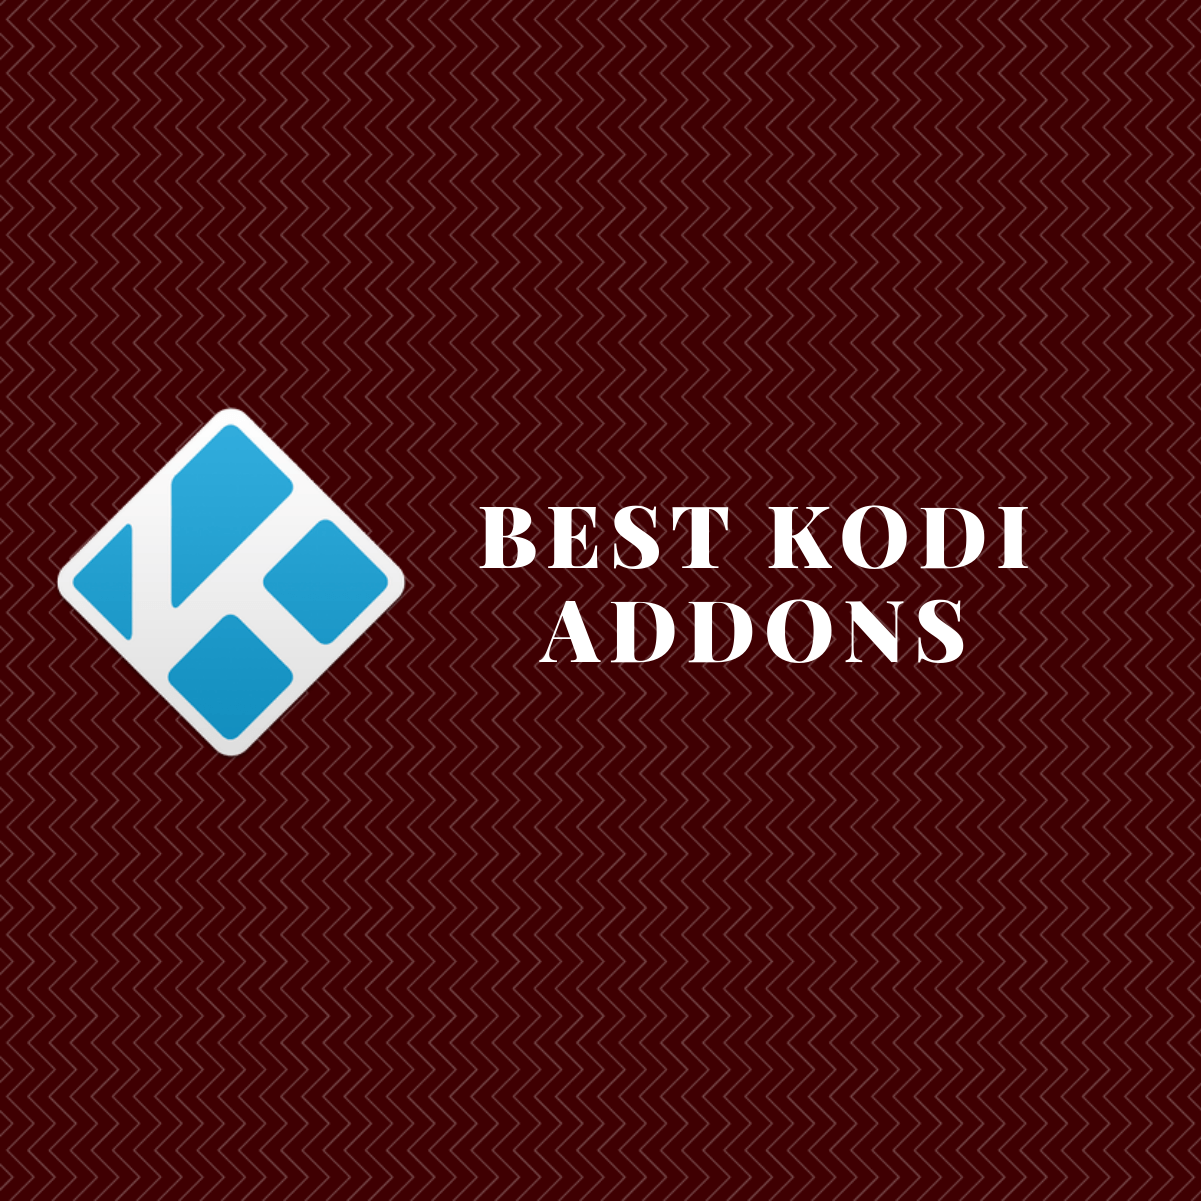 In 2 Minutes, Get 120+ Best Kodi Addons 2019 Updated List